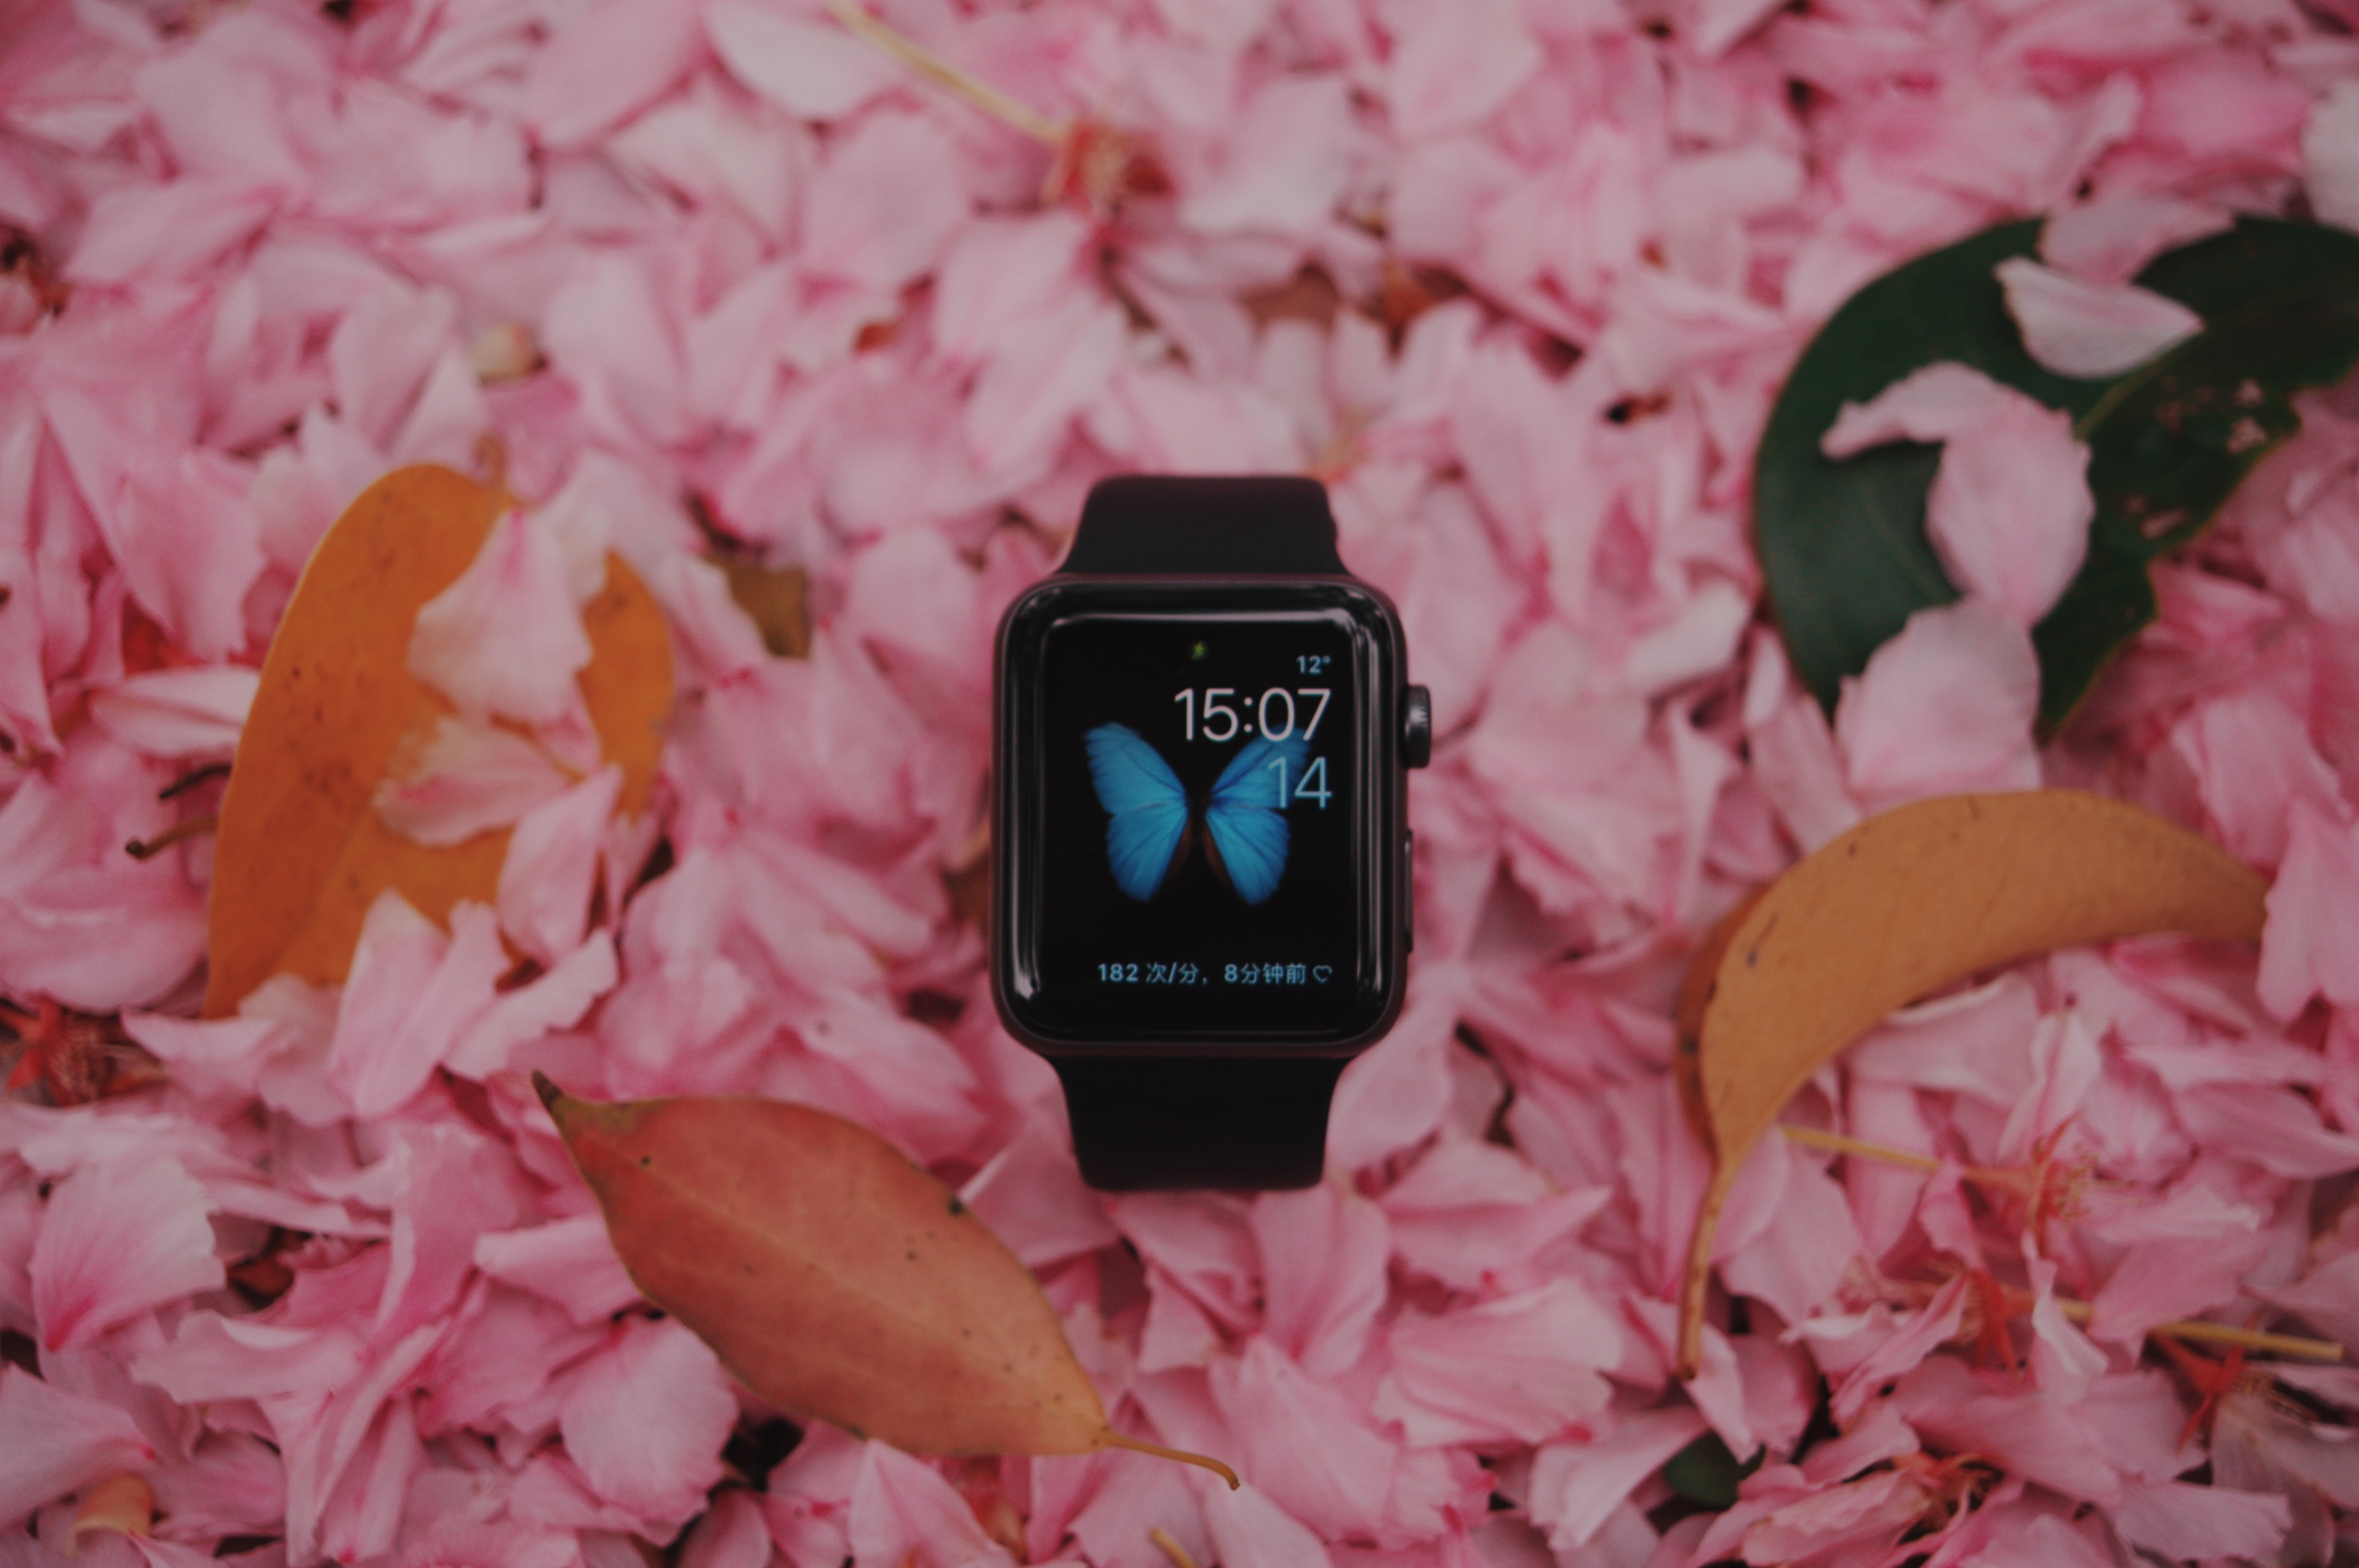 space black aluminum case Apple Watch with black Sport Band on pink petals